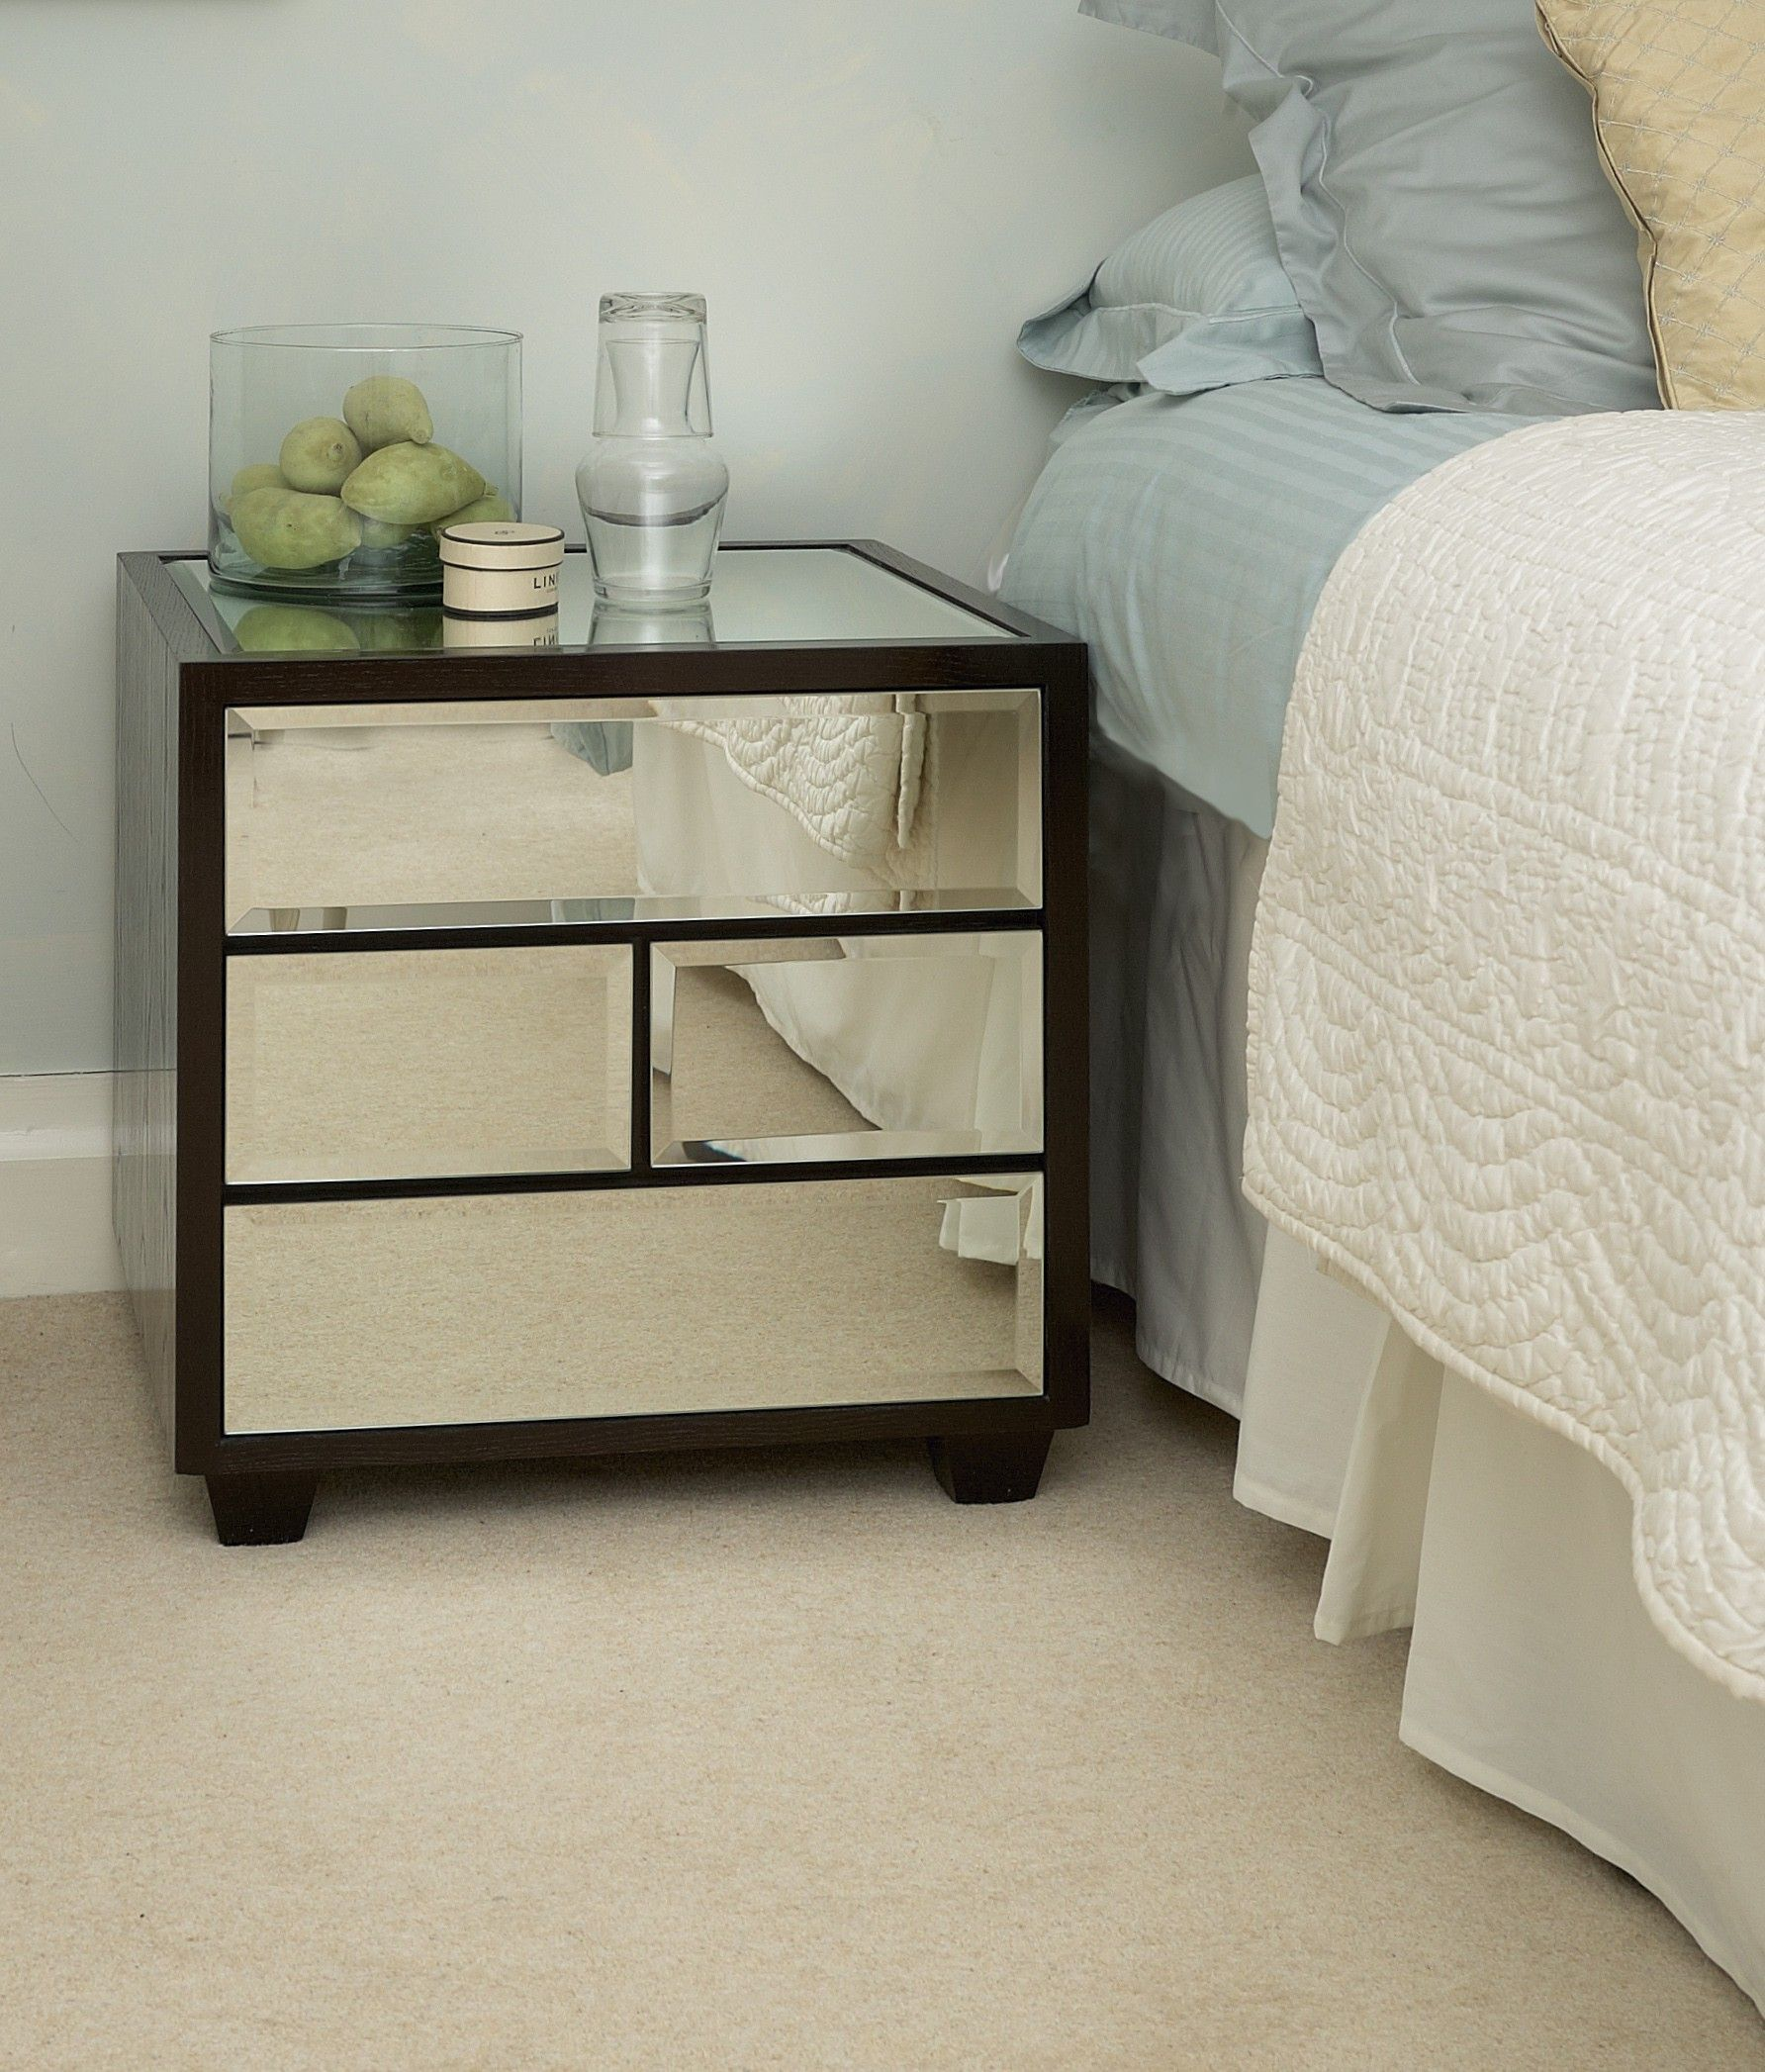 Furniture Venetian Mirrored Bedside Table With Glass Top 4 Drawer And Brown Wooden Frame On Carpet Tiles Ideas